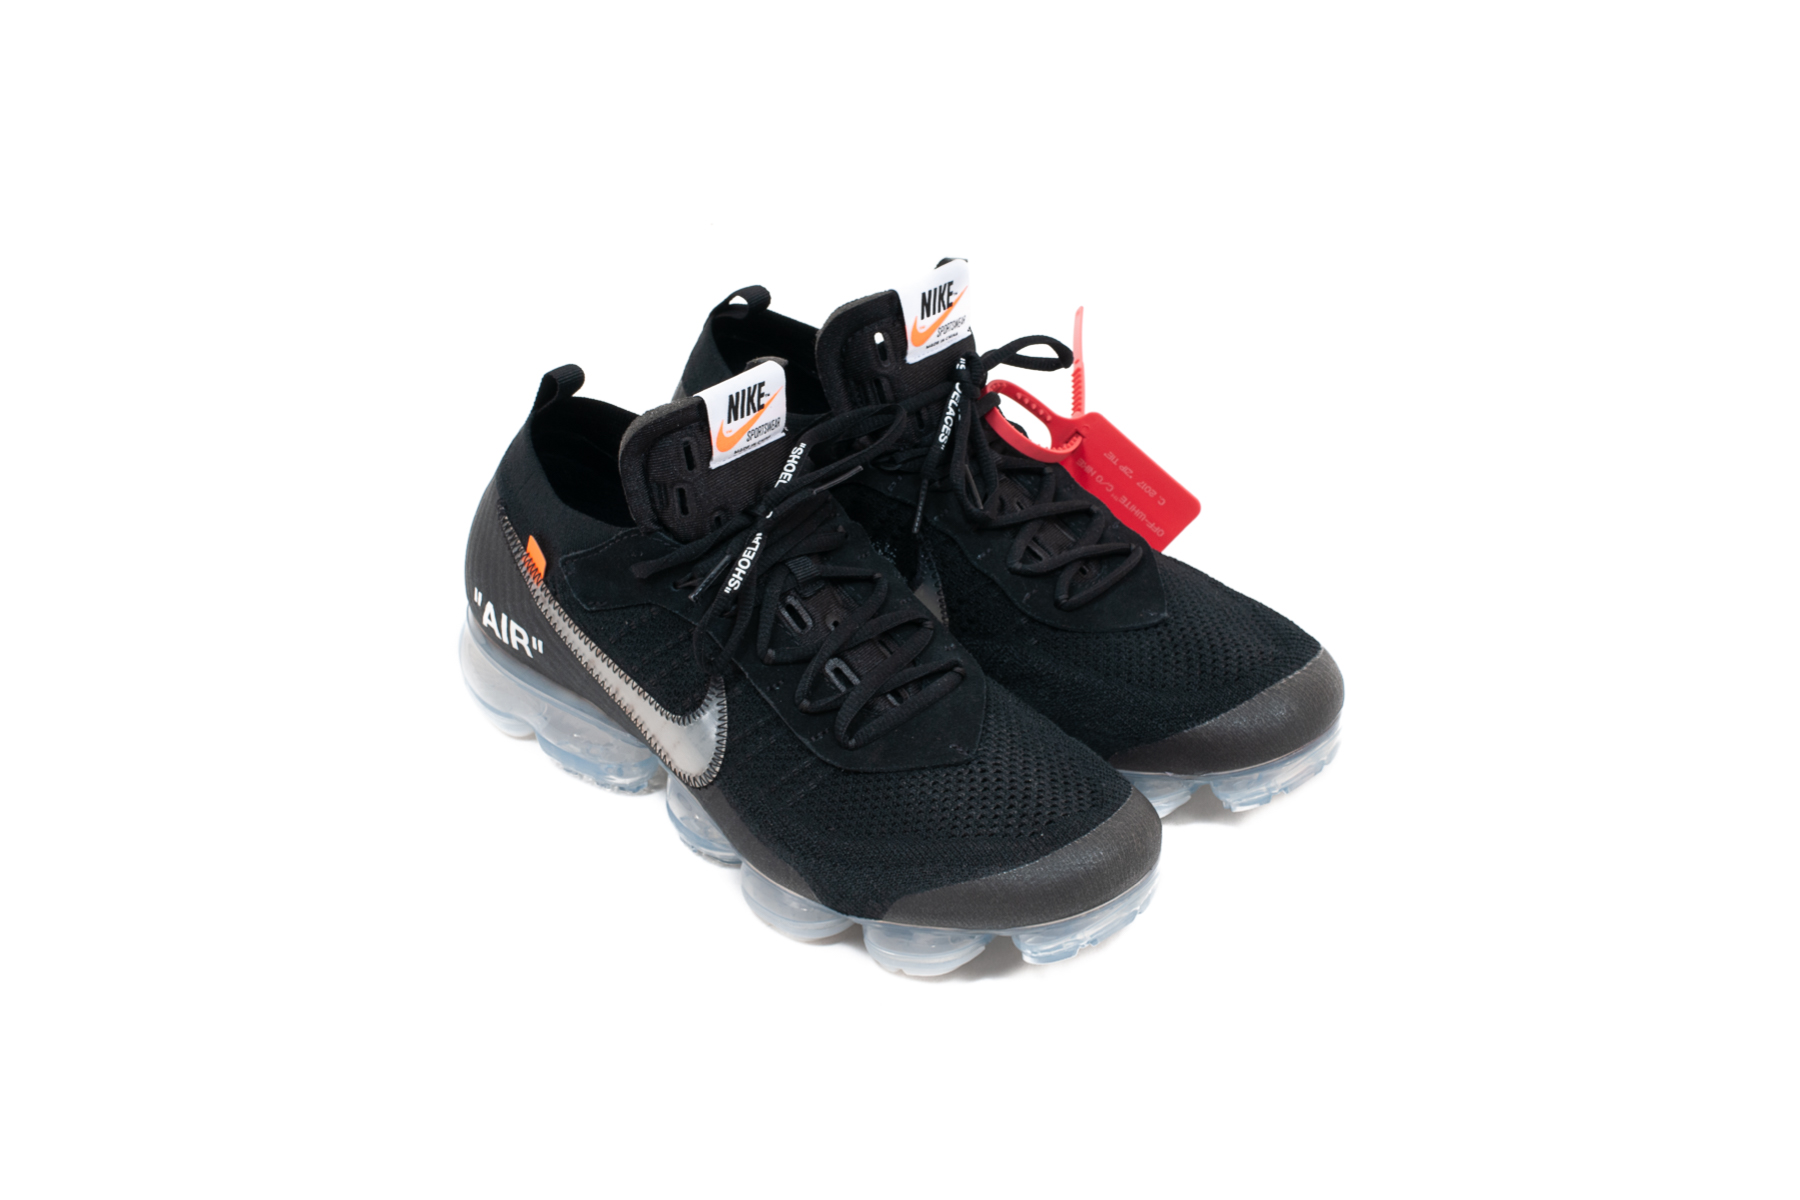 huge discount 10004 64805 Off-White Nike Air Vapormax